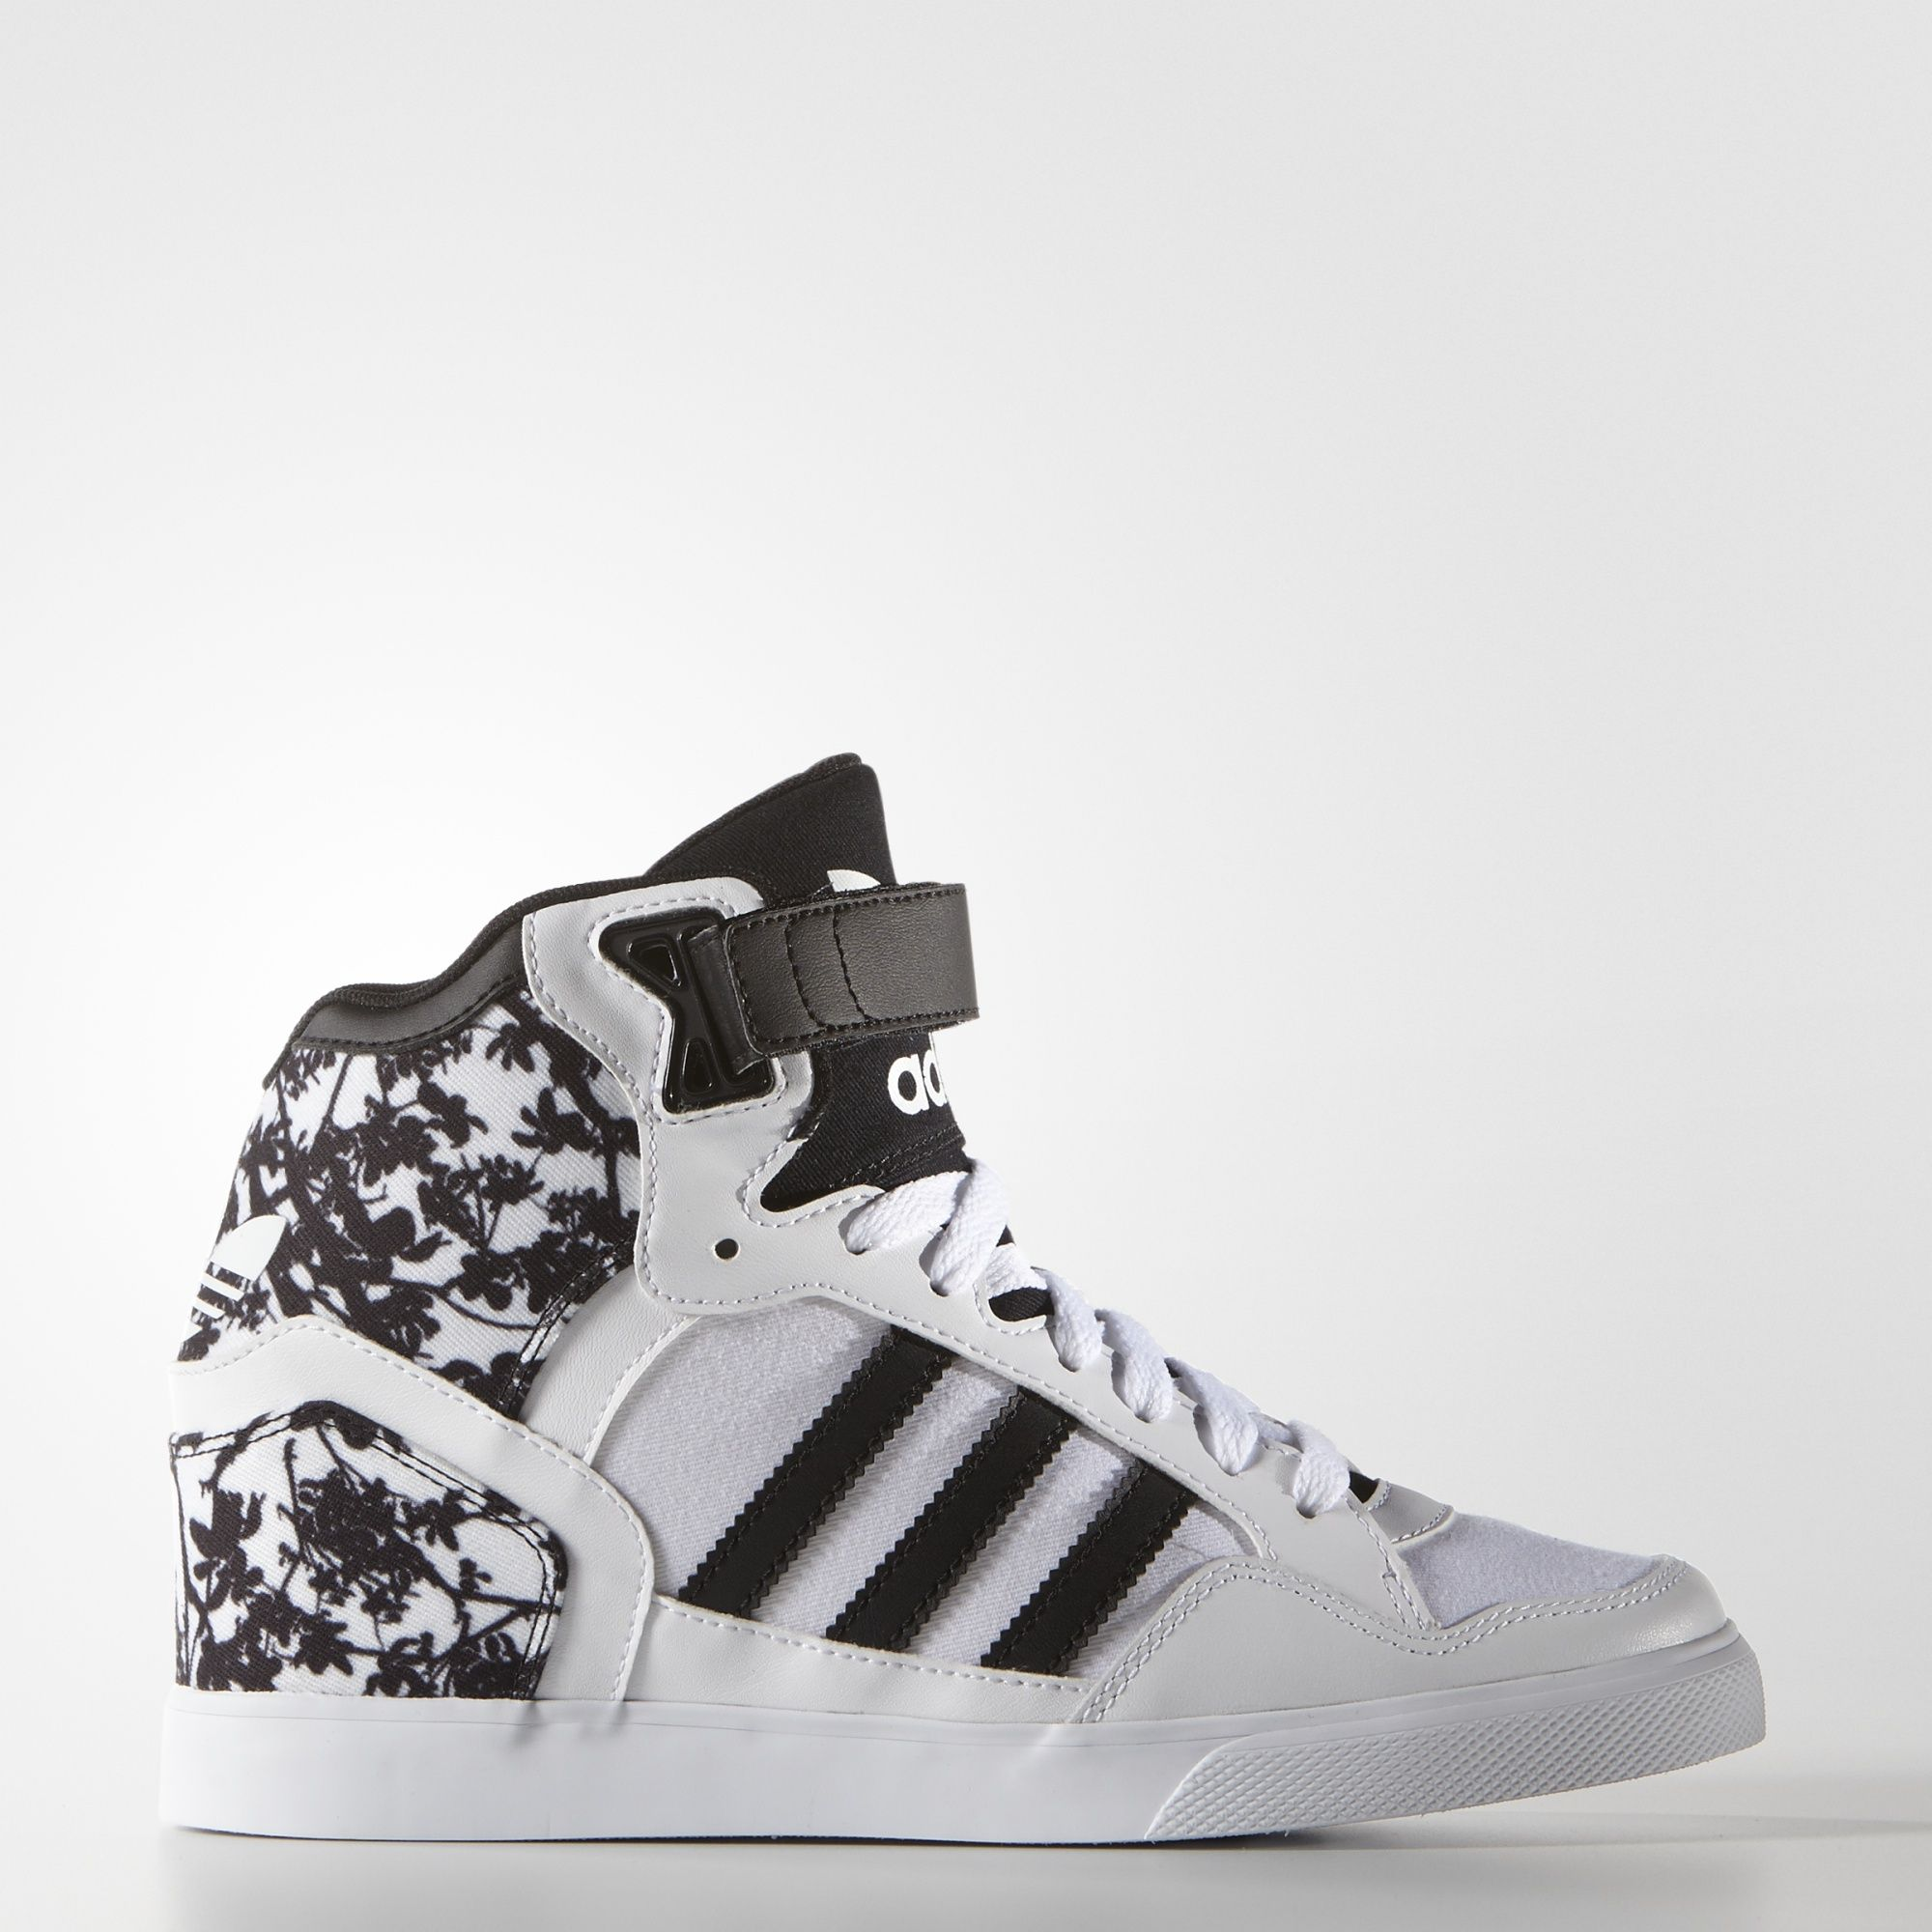 adidas up shoes